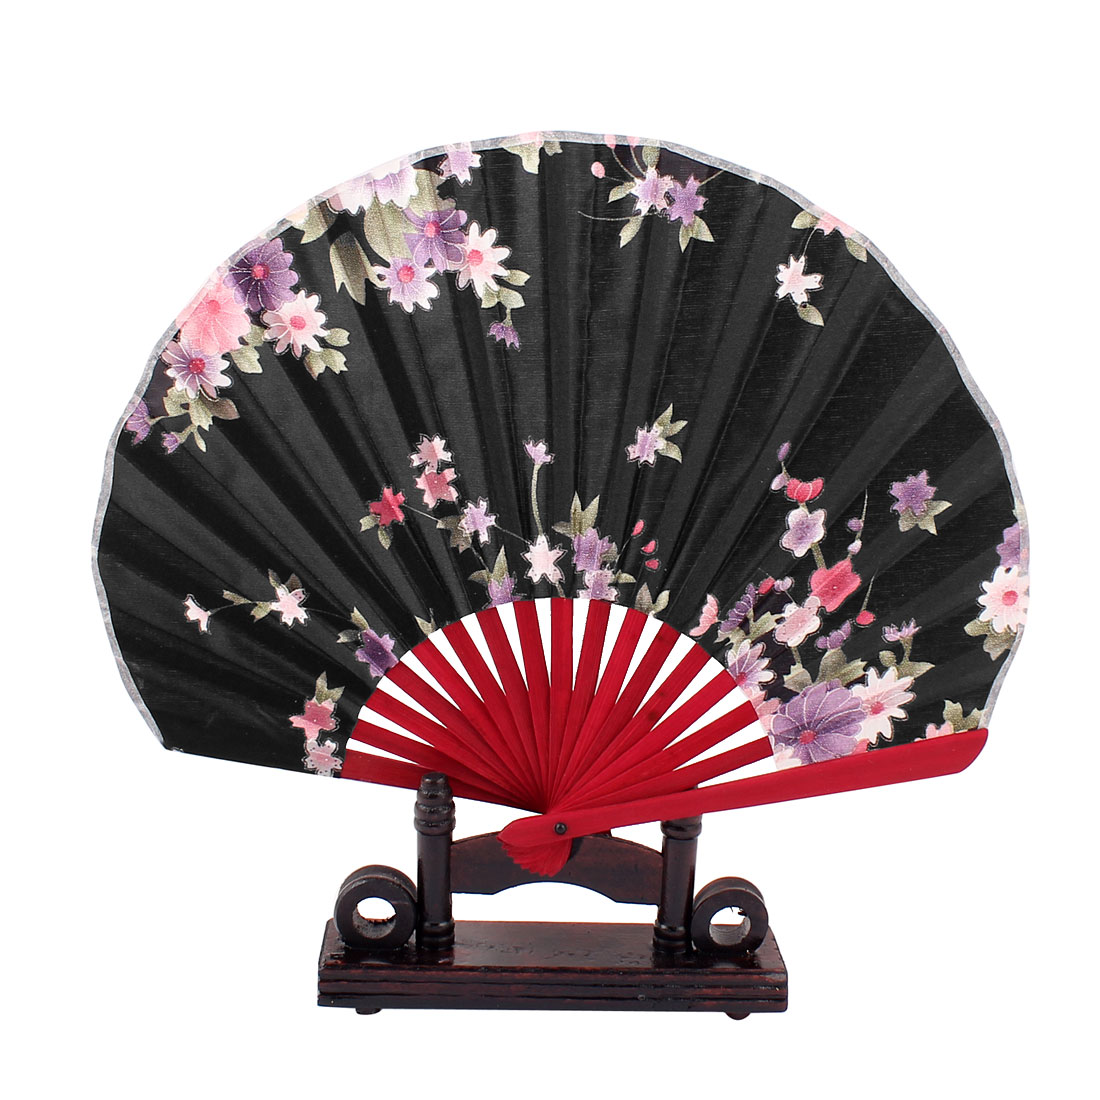 Chinese Wedding Party Favor Peach Flower Wood Folding Hand Fan Black w Holder